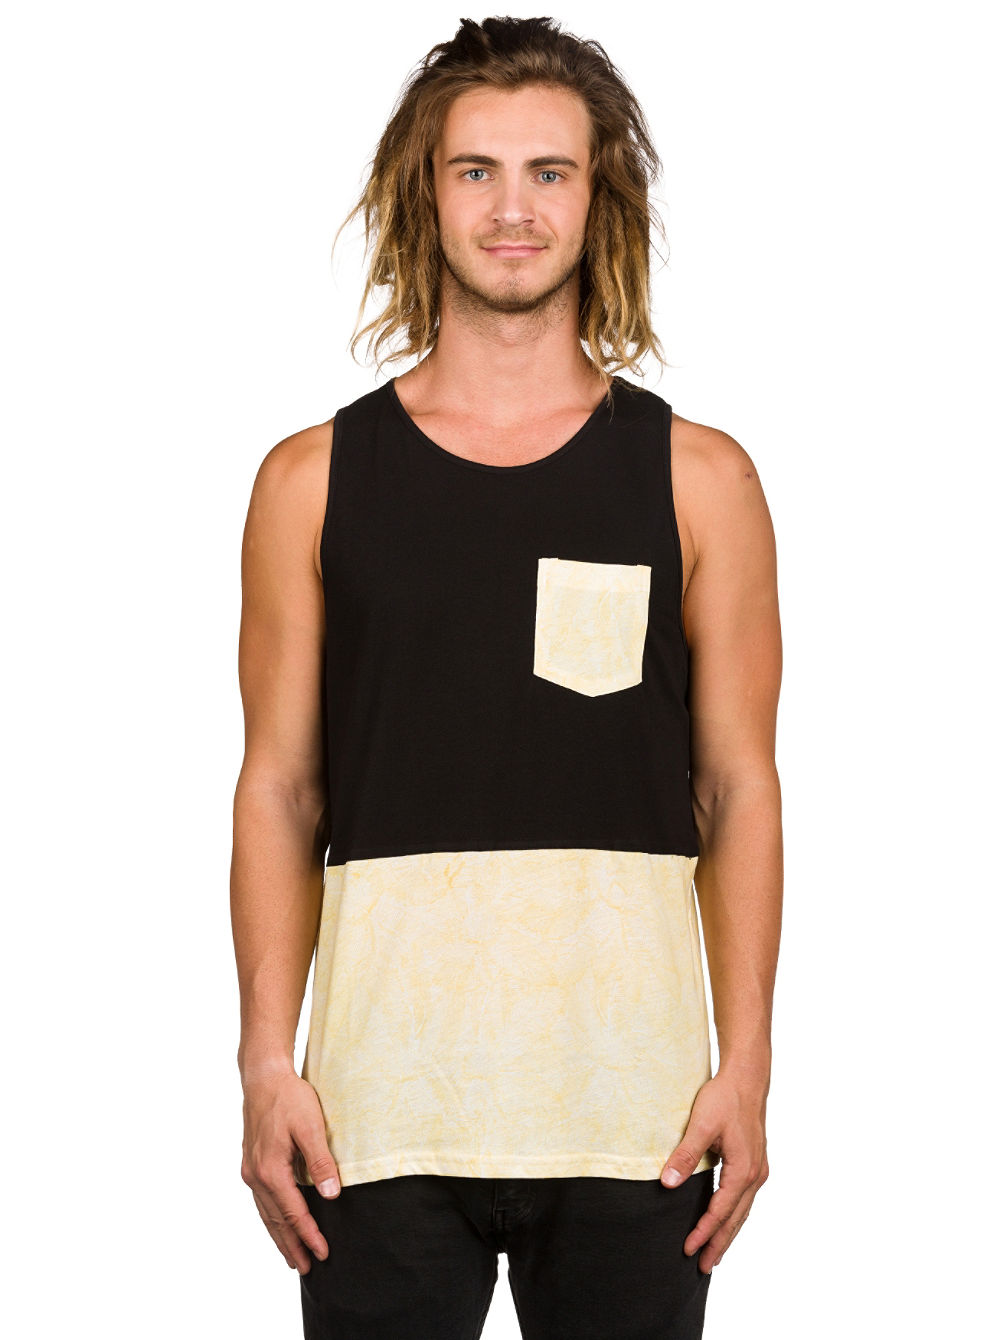 BT Palm Tank Top